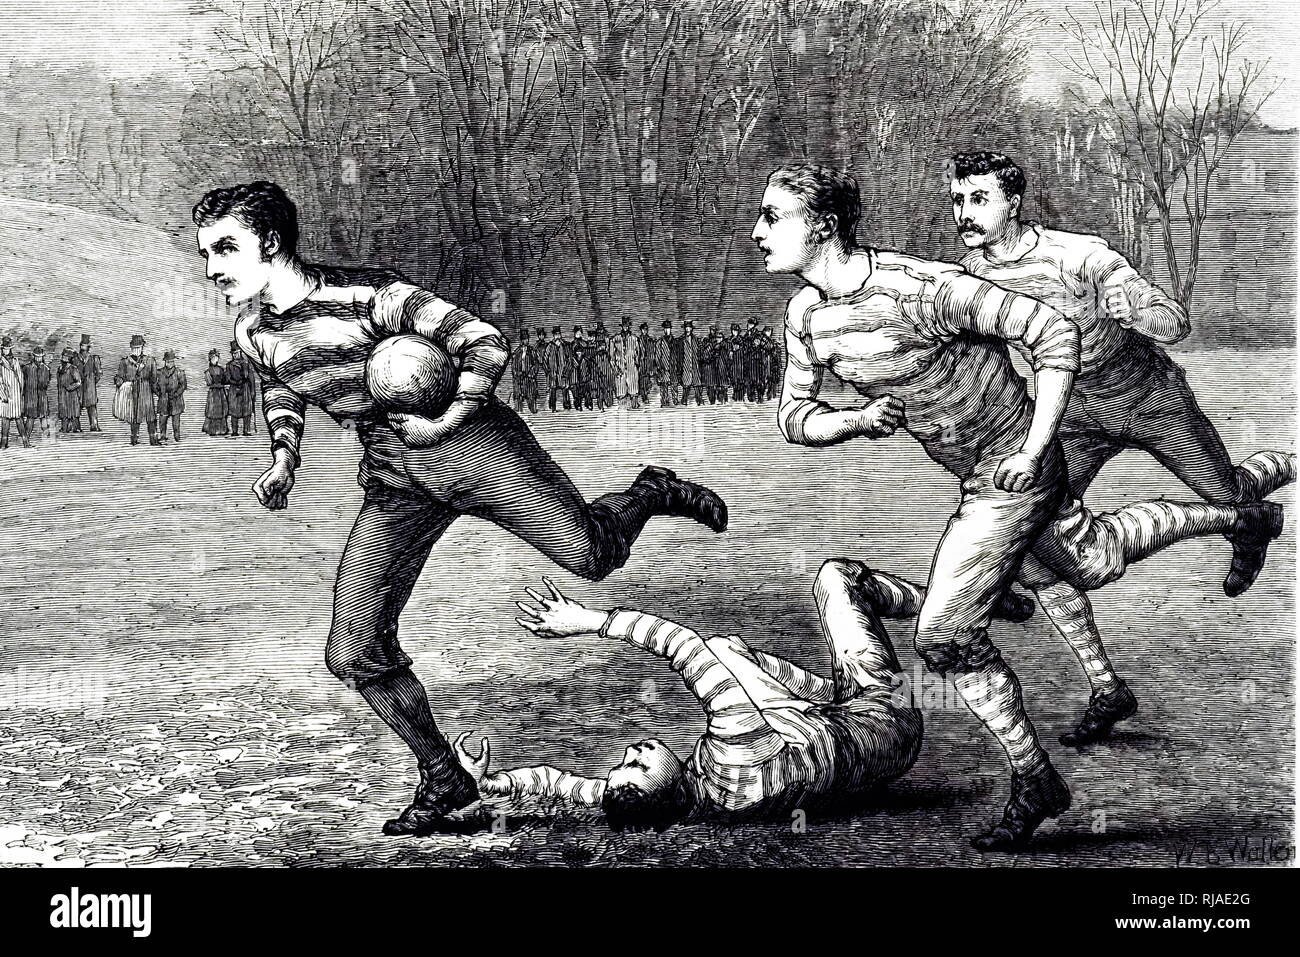 Illustration depicting Rugby football. The team sports rugby league and rugby union. Rugby union originated at Rugby School in Rugby, Warwickshire and rugby league originated in Huddersfield, West Yorkshire after splitting to form the Northern Rugby Football Union in 1895, today called the Rugby Football League. Rugby football (both league and union) is one of many versions of football played at English public schools in the 19th century - Stock Image